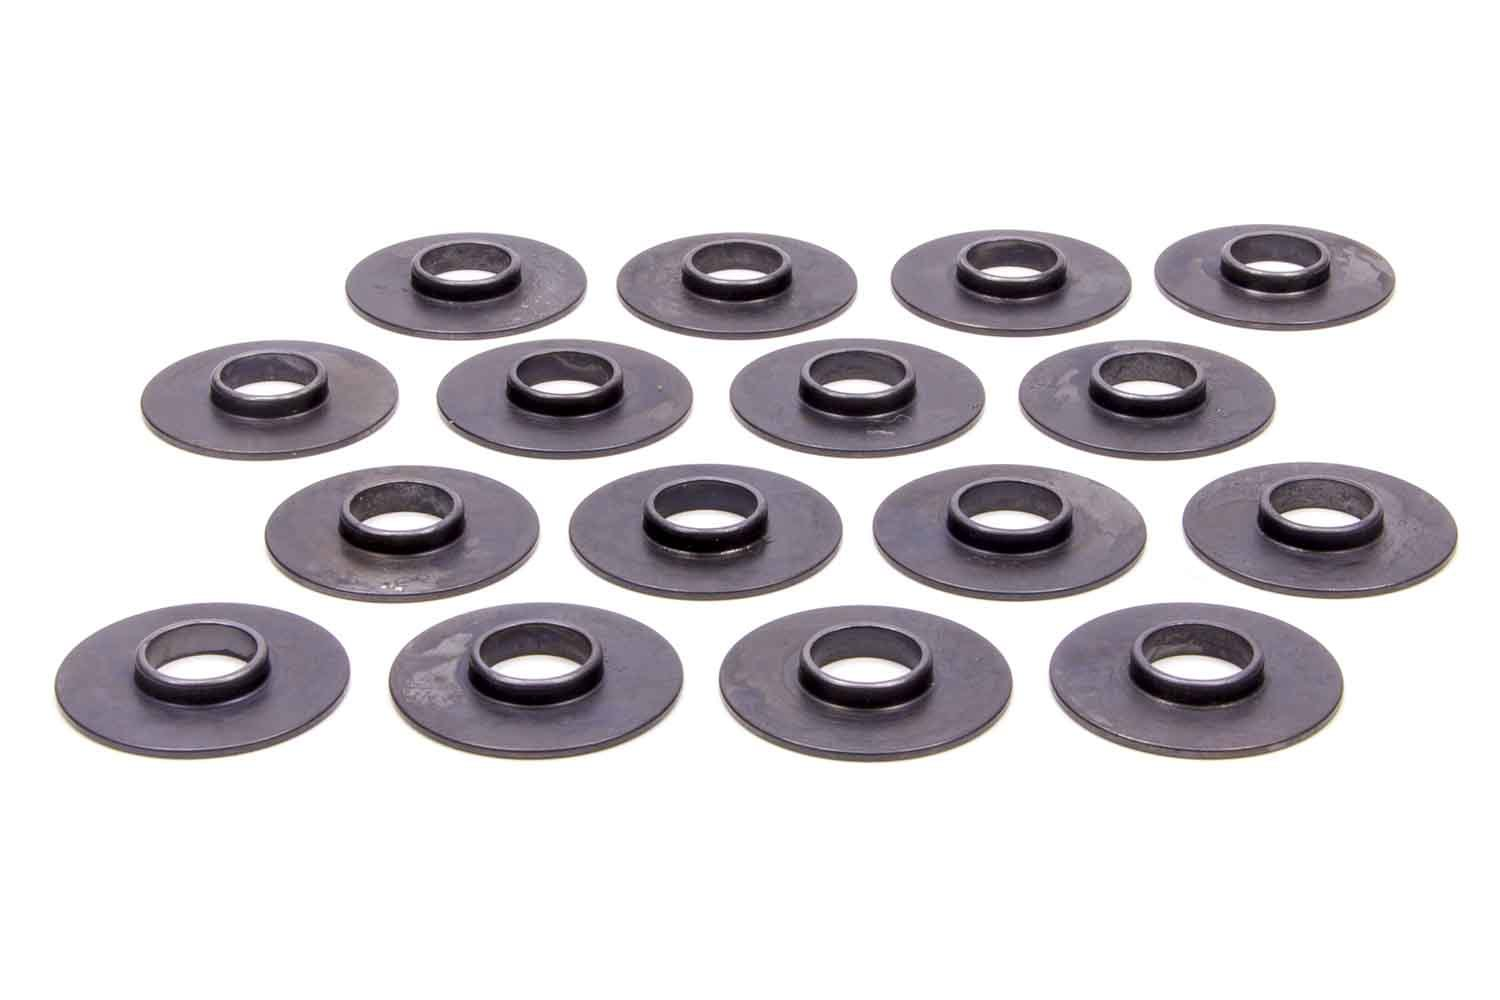 PAC Racing Springs PAC-S109 Valve Spring Locator, Inside, 0.060 in Thick, 1.650 in OD, 0.570 in ID, 0.630 in Spring ID, Chromoly, Set of 16